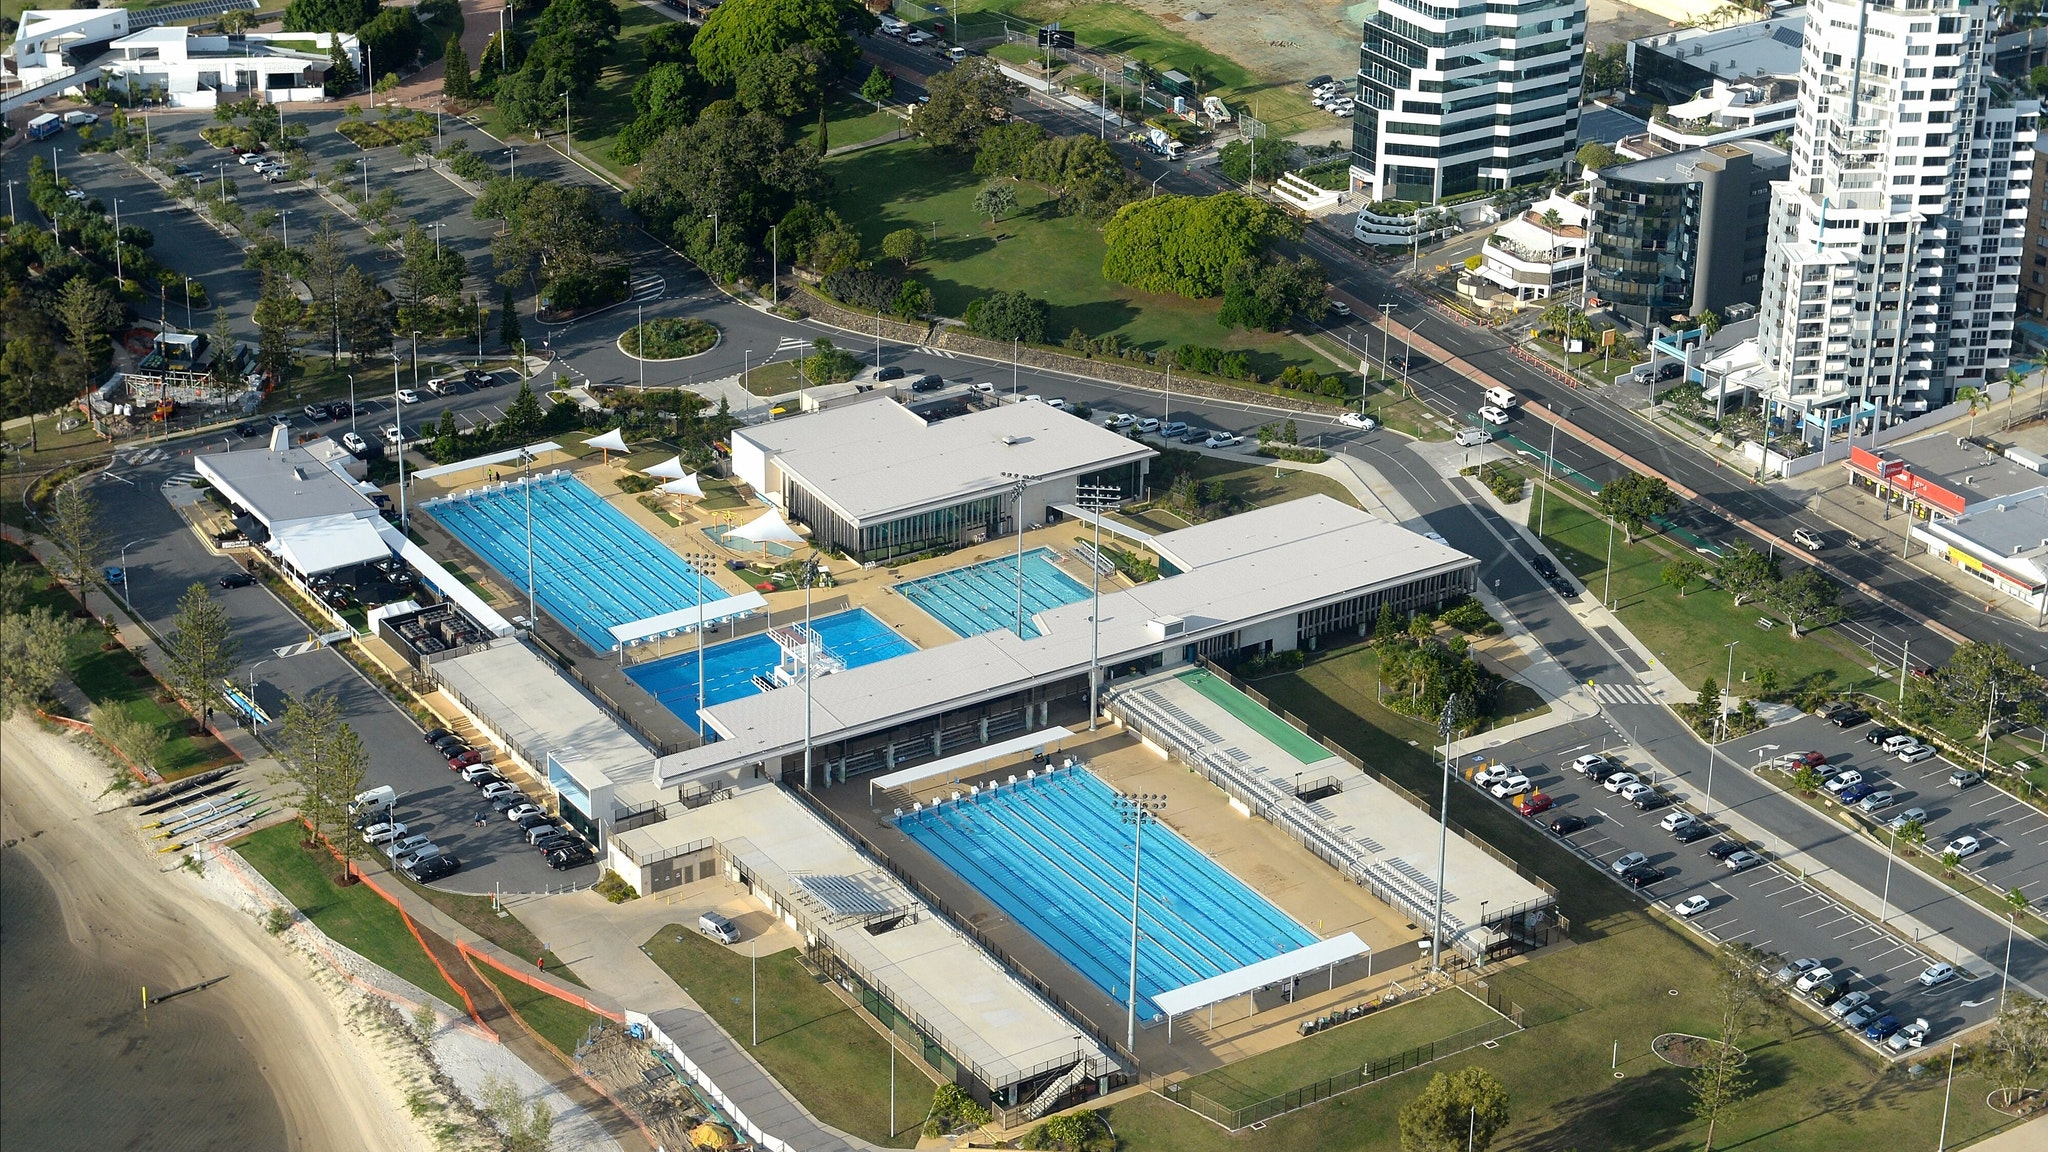 Gold Coast 2018 Commonwealth Games Swimming